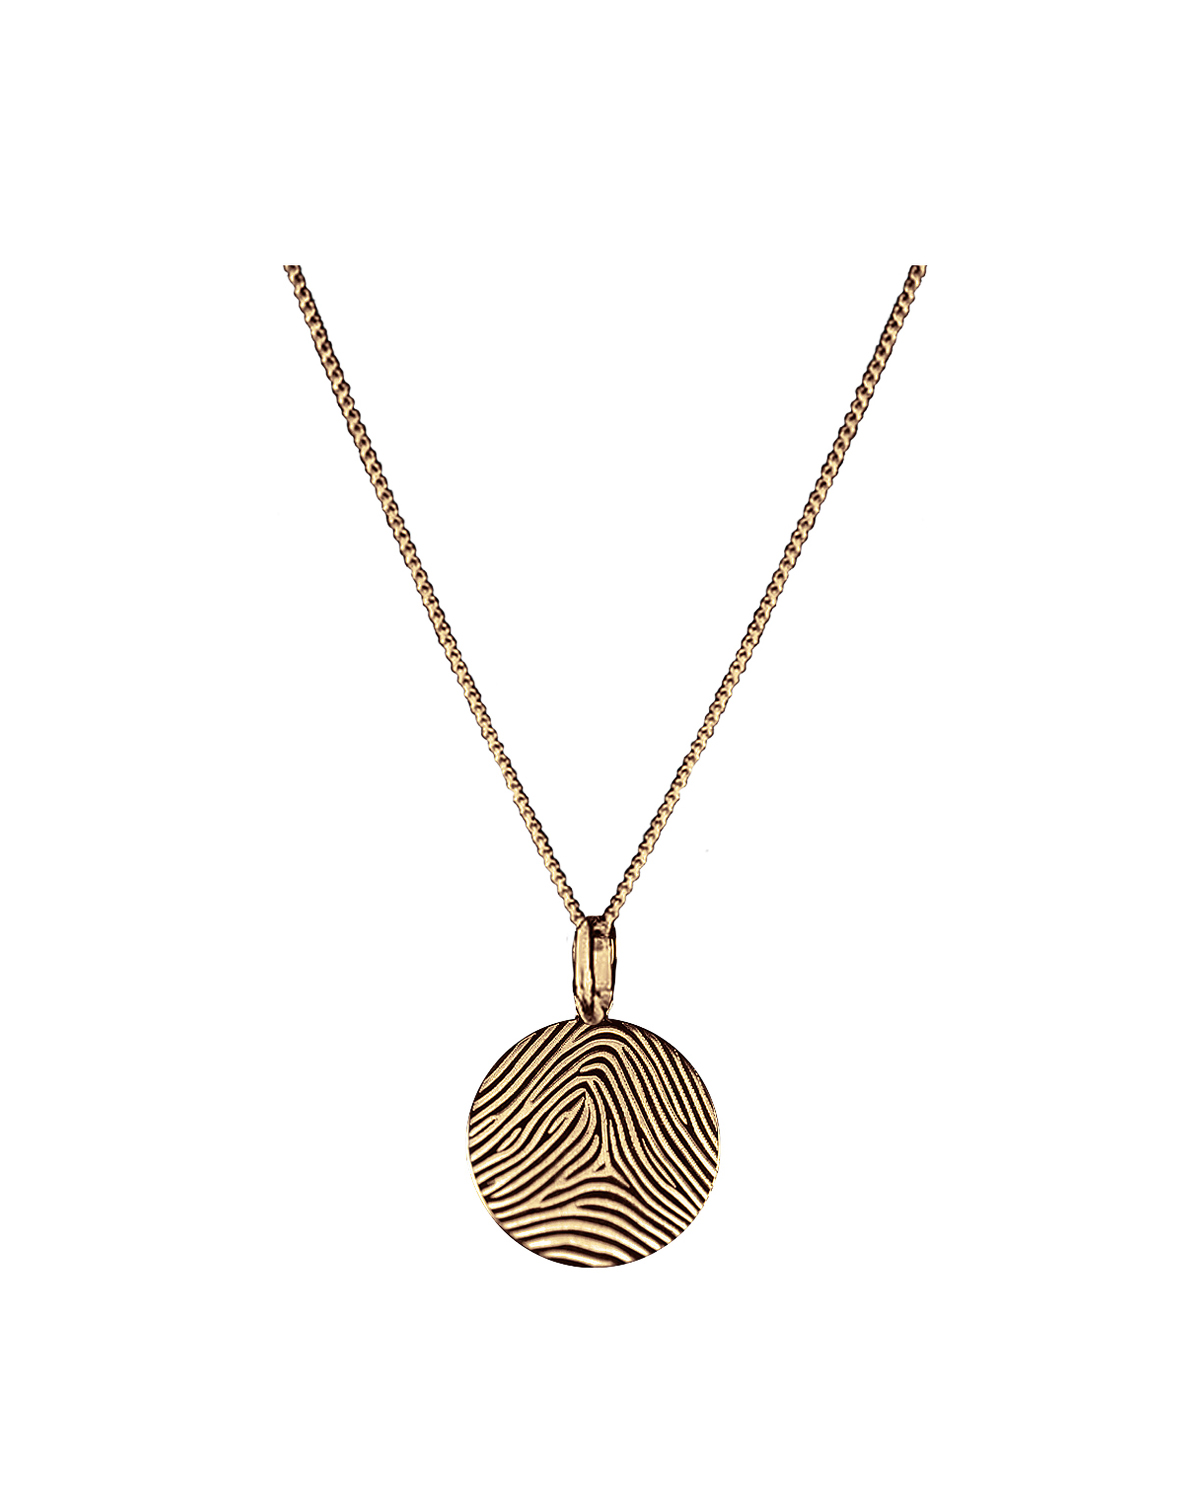 Huella Necklace, Gold-plated